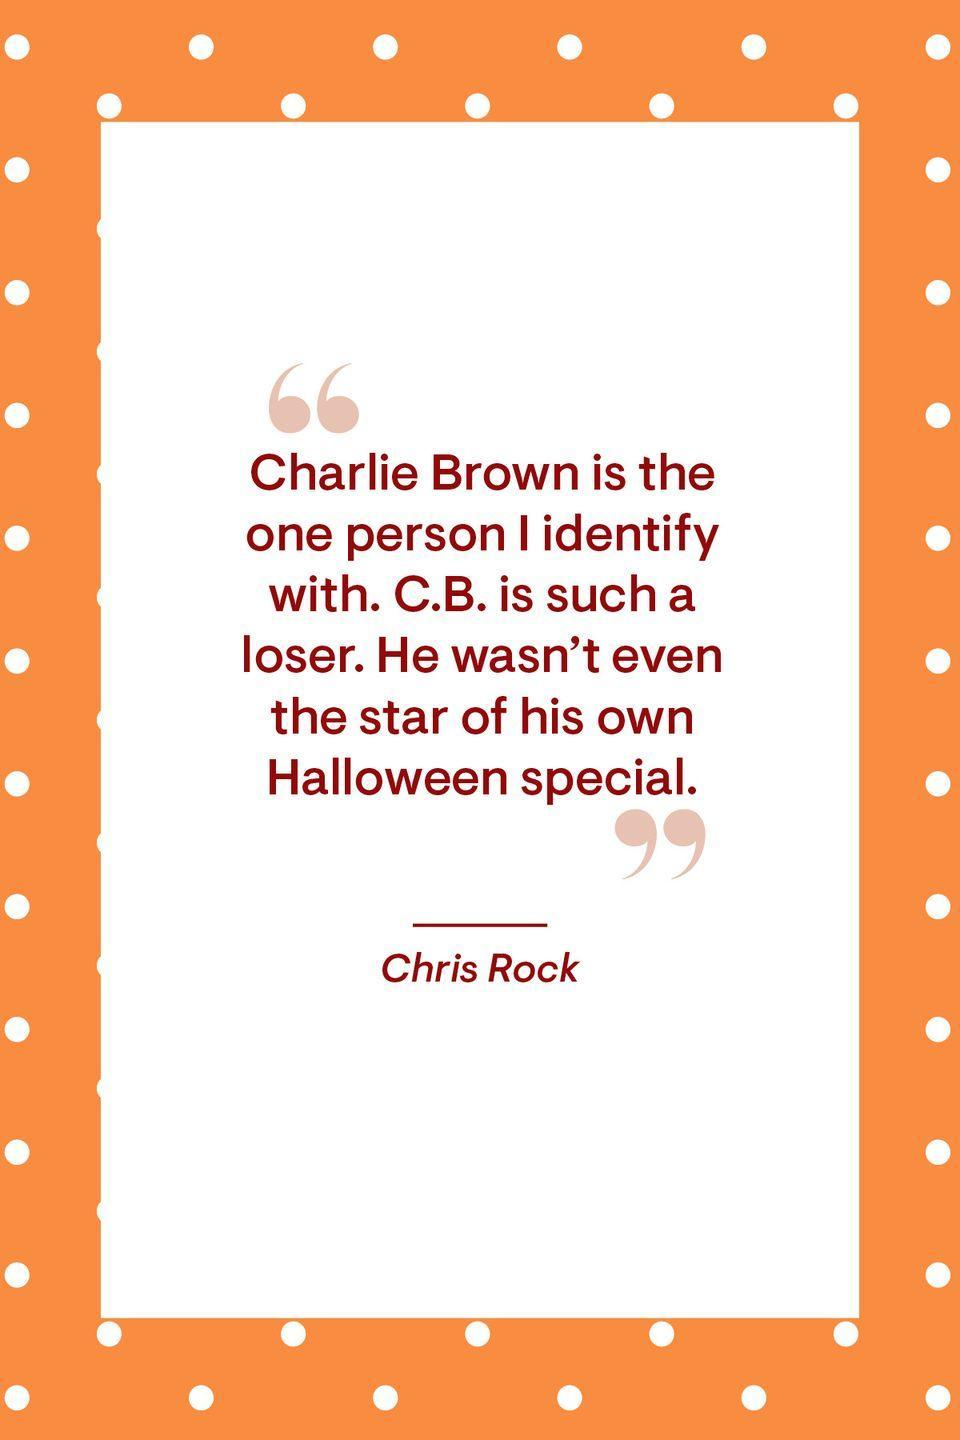 """<p>""""Charlie Brown is the one person I identify with. C.B. is such a loser. He wasn't even the star of his own Halloween special.""""<br></p>"""